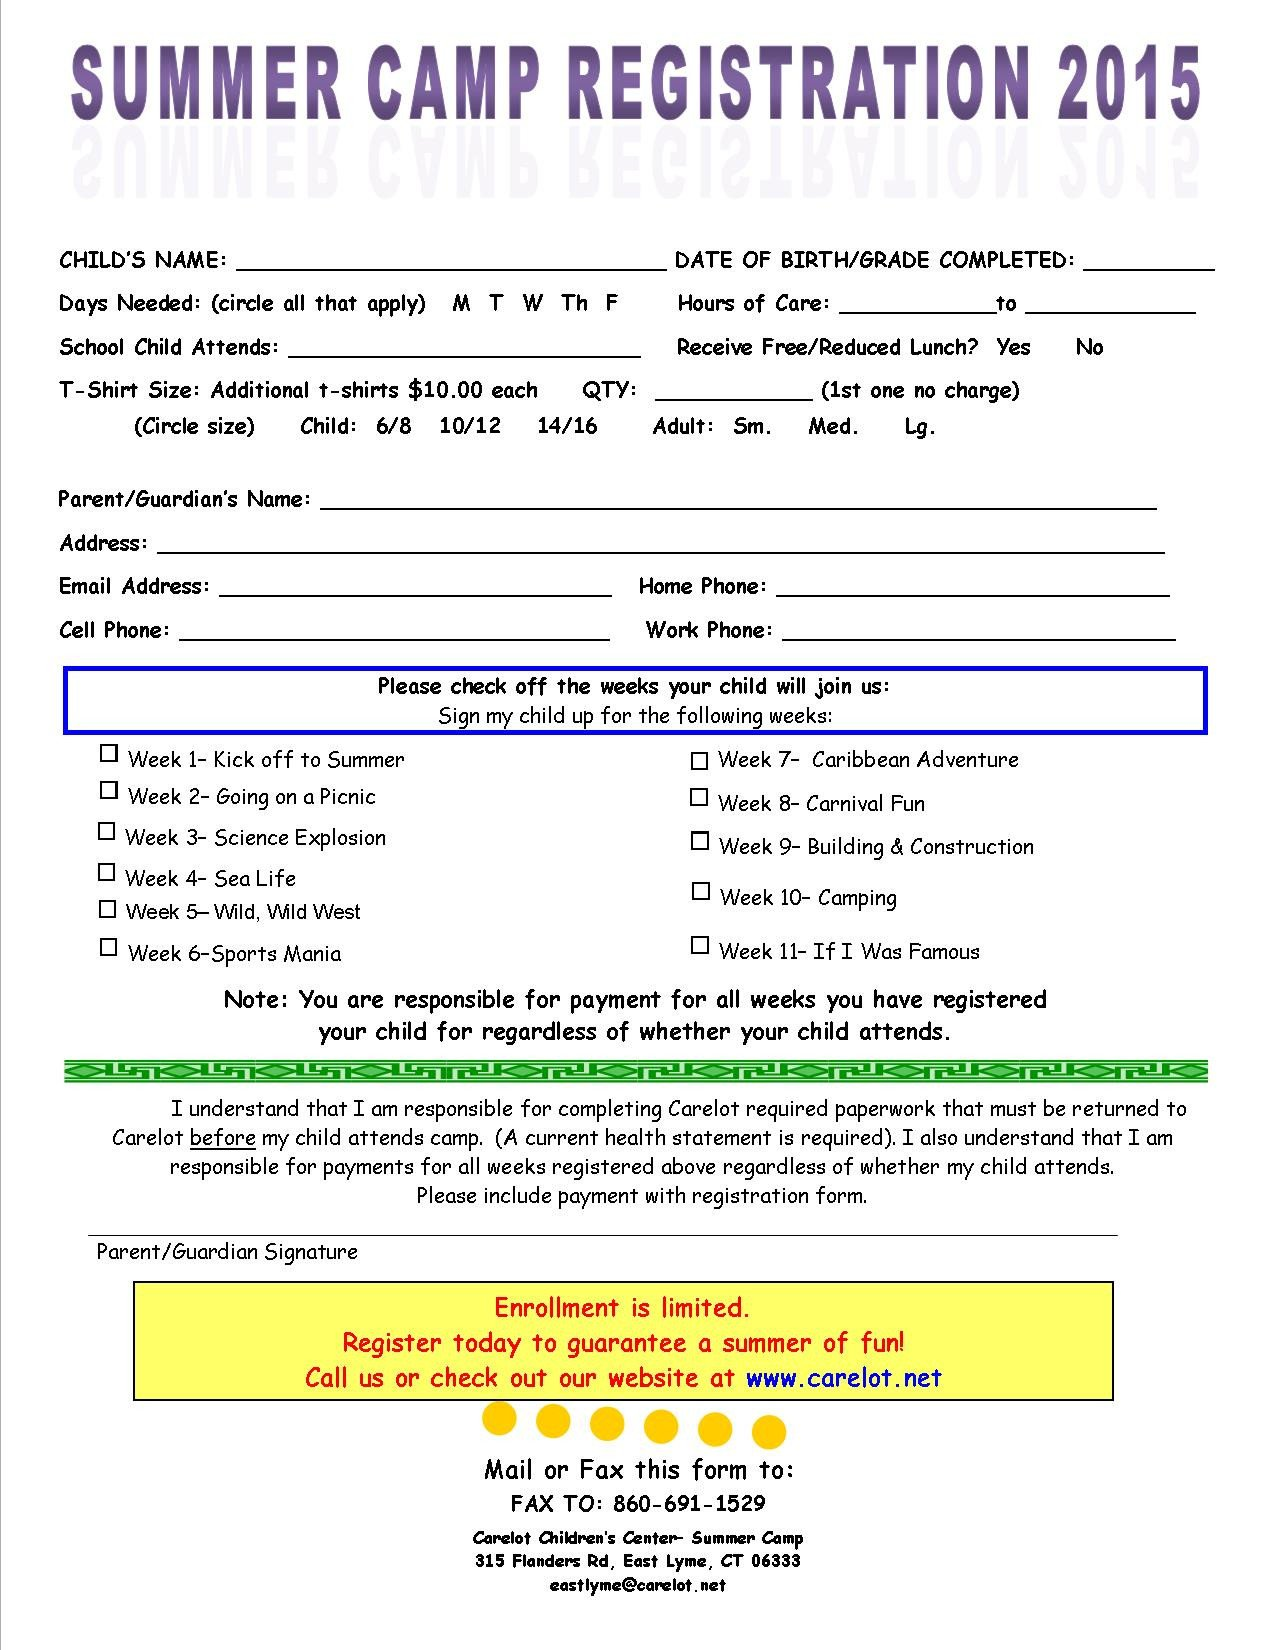 Camp Registration forms Special events Carelot Children S Center